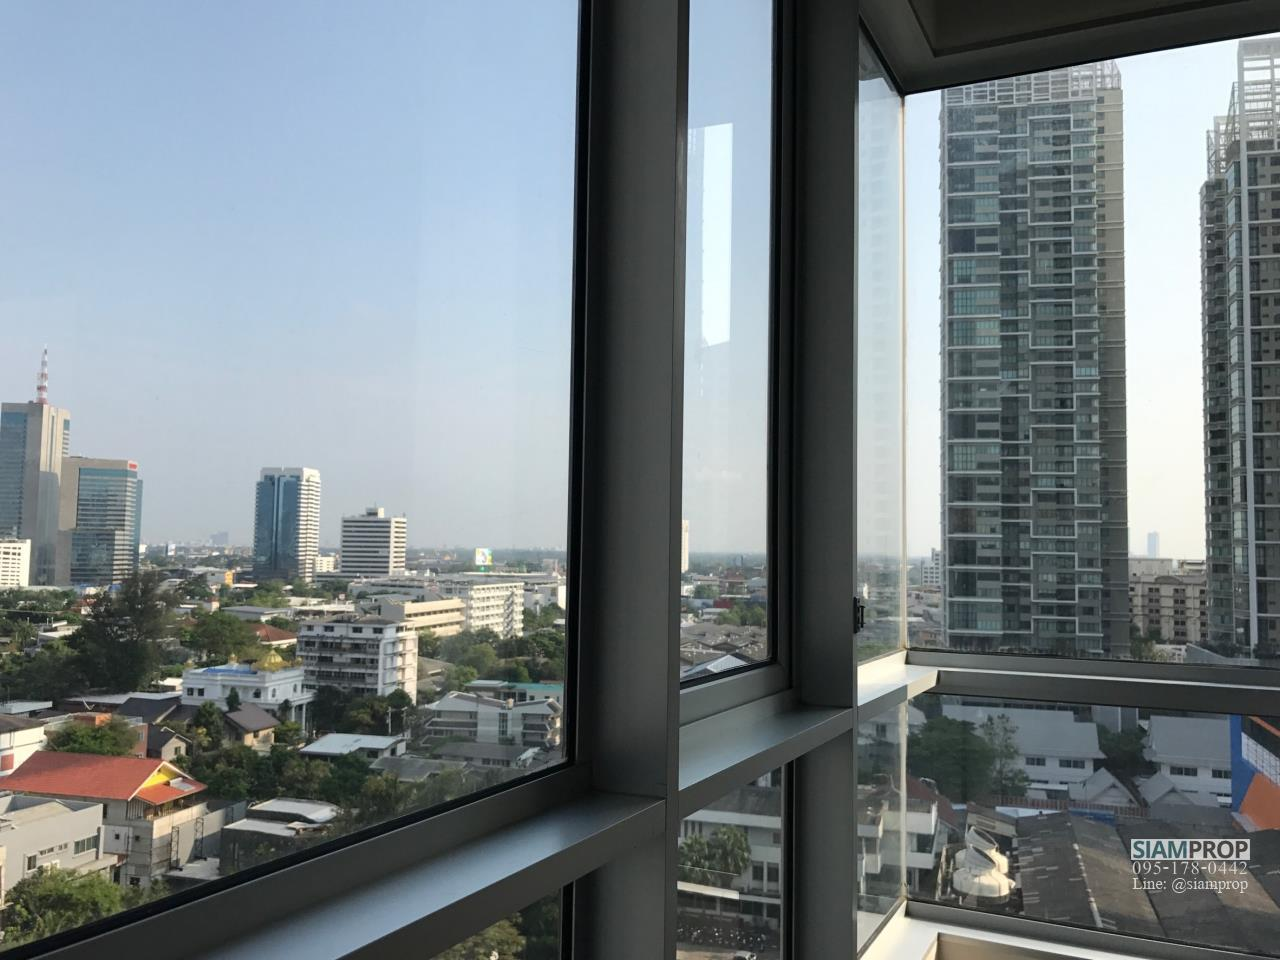 Siam Prop Agency's Condo One X Sukhumvit 26, 1 Bedroom for rent 9